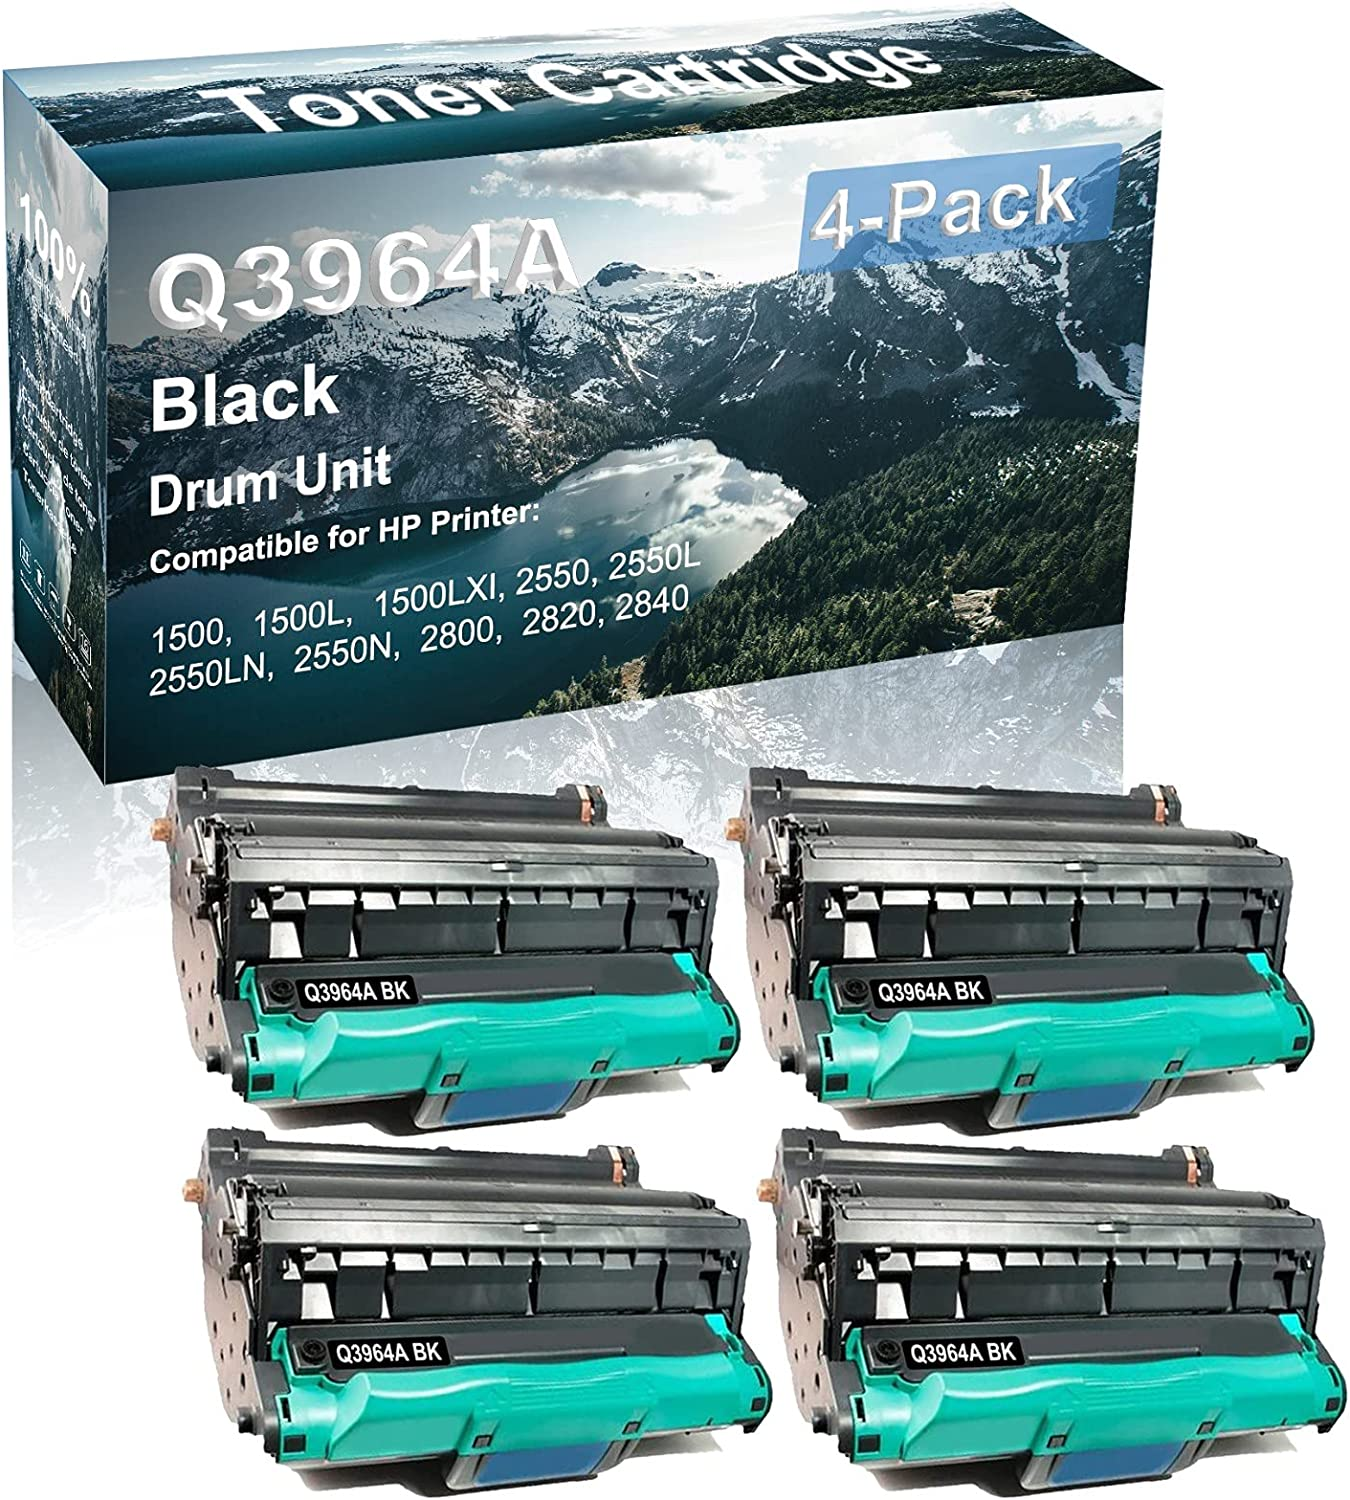 4-Pack Compatible Q3964A Drum Kit use for HP 1500 1500L 1500LXI Printer (Black)